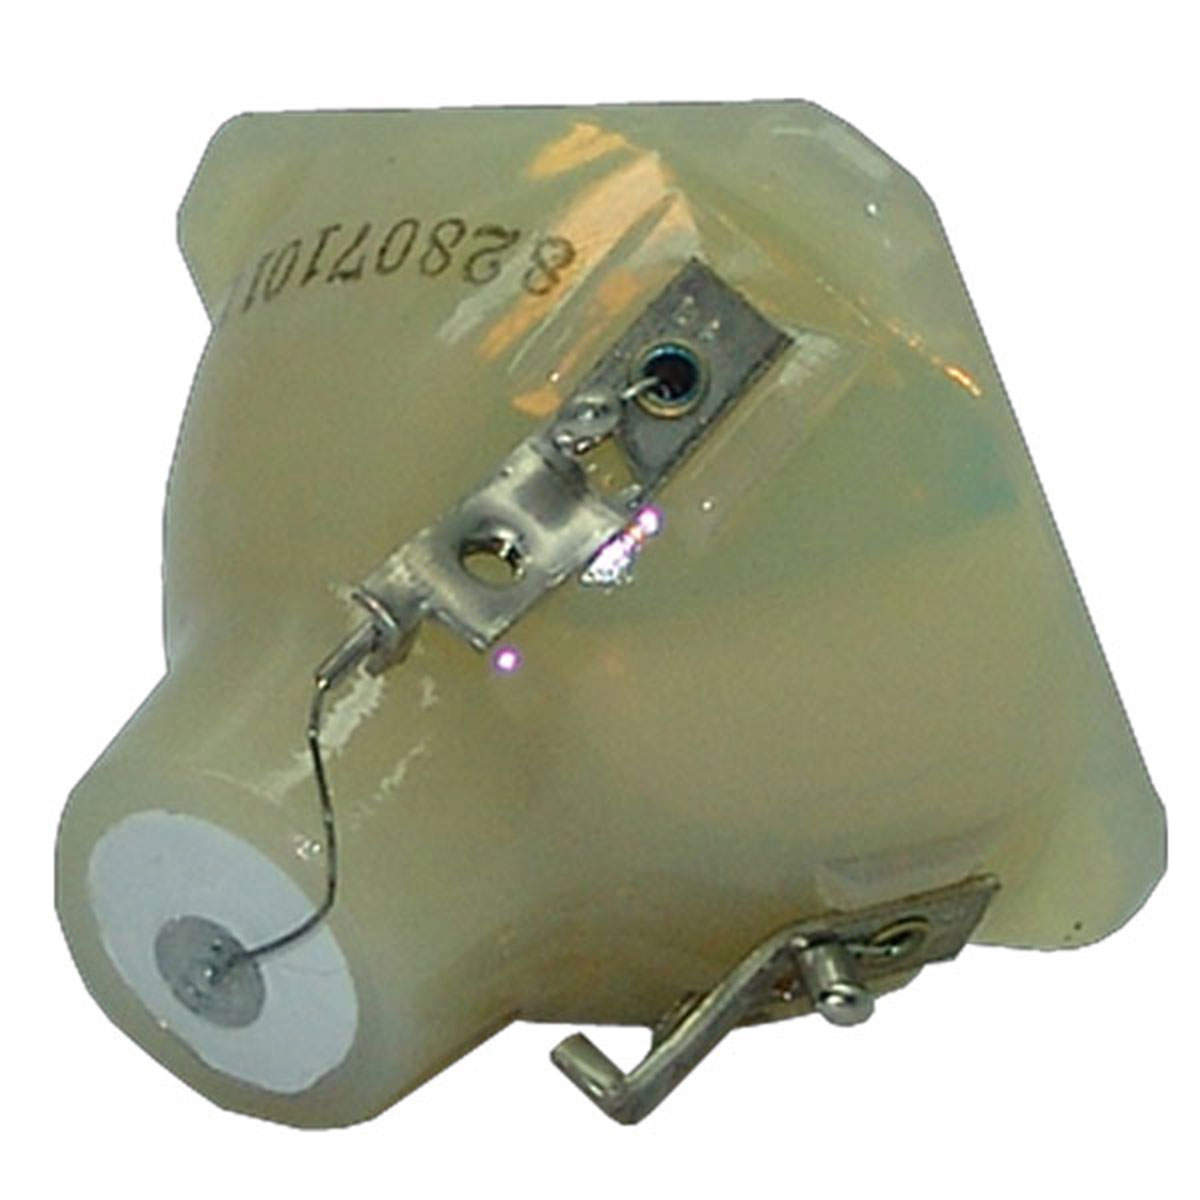 Lutema Platinum Bulb for ProjectionDesign F22 Projector Lamp (Original Philips Inside) - image 1 of 5